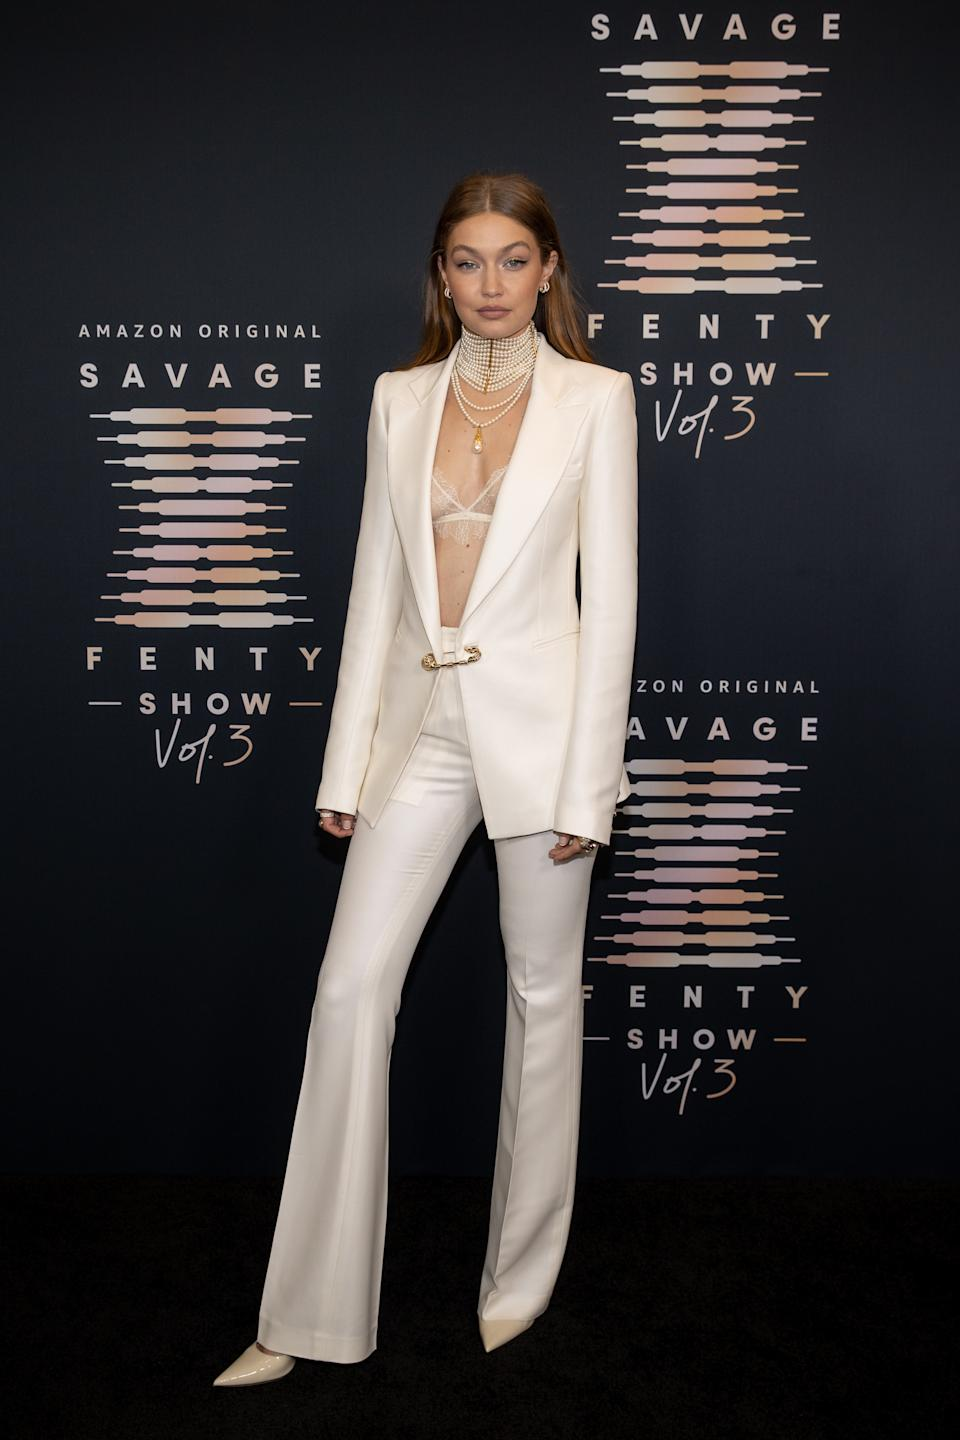 LOS ANGELES, CALIFORNIA - SEPTEMBER 22: In this image released on September 22, Gigi Hadid attends Rihanna's Savage X Fenty Show Vol. 3 presented by Amazon Prime Video at The Westin Bonaventure Hotel & Suites in Los Angeles, California; and broadcast on September 24, 2021. (Photo by Emma McIntyre/Getty Images for Rihanna's Savage X Fenty Show Vol. 3 Presented by Amazon Prime Video)